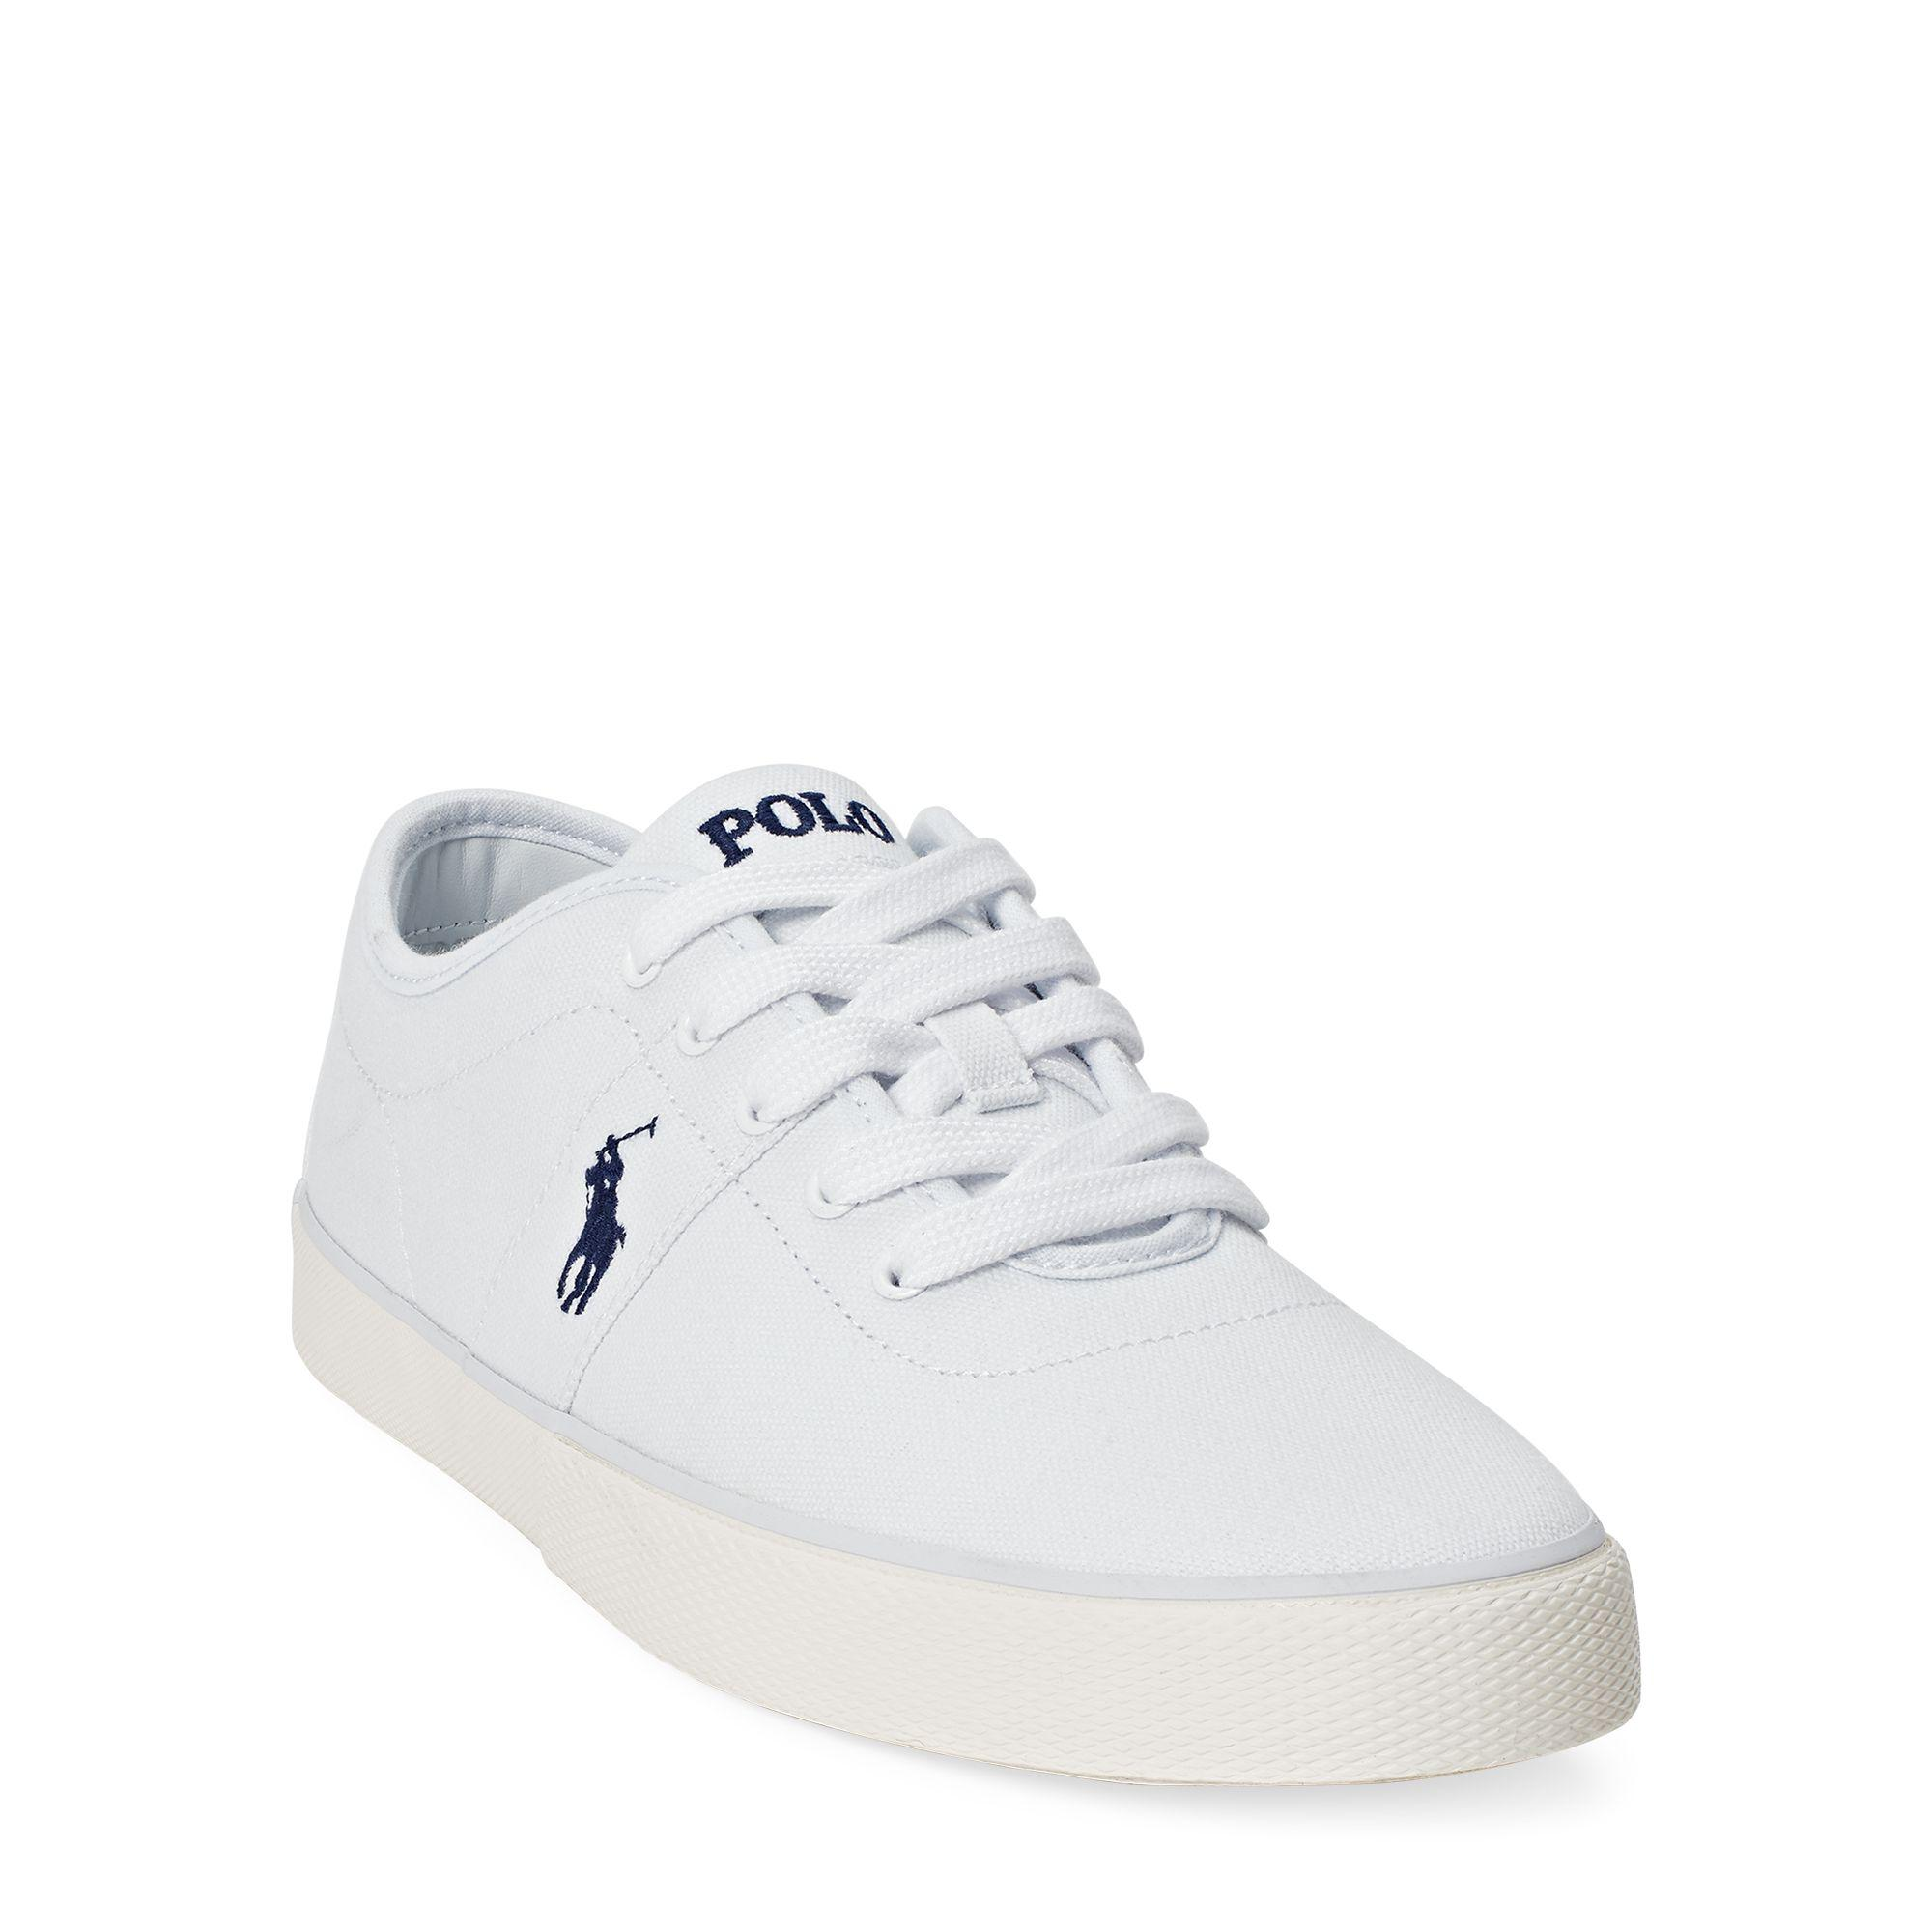 75814afecb7 polo-ralph-lauren-Pure-White-Halford-Canvas-Low-top-Sneaker.jpeg